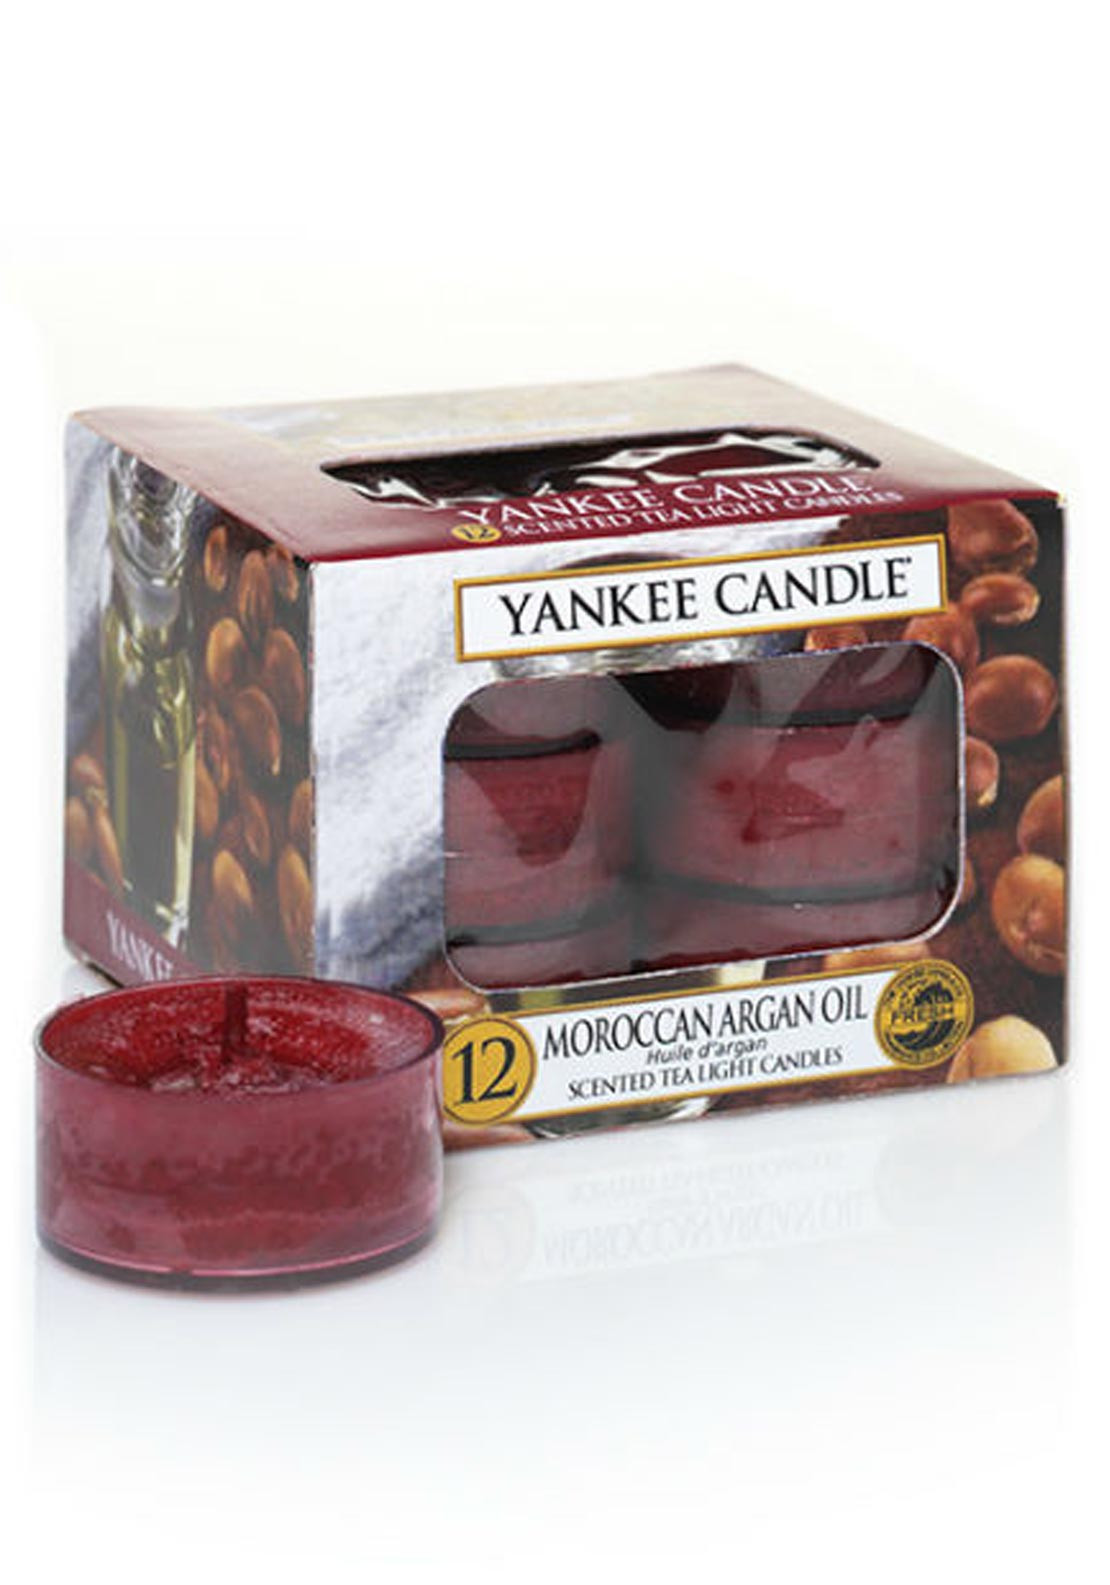 Yankee Candle 12 Scented Tea Light Candles, Moroccan Argan Oil